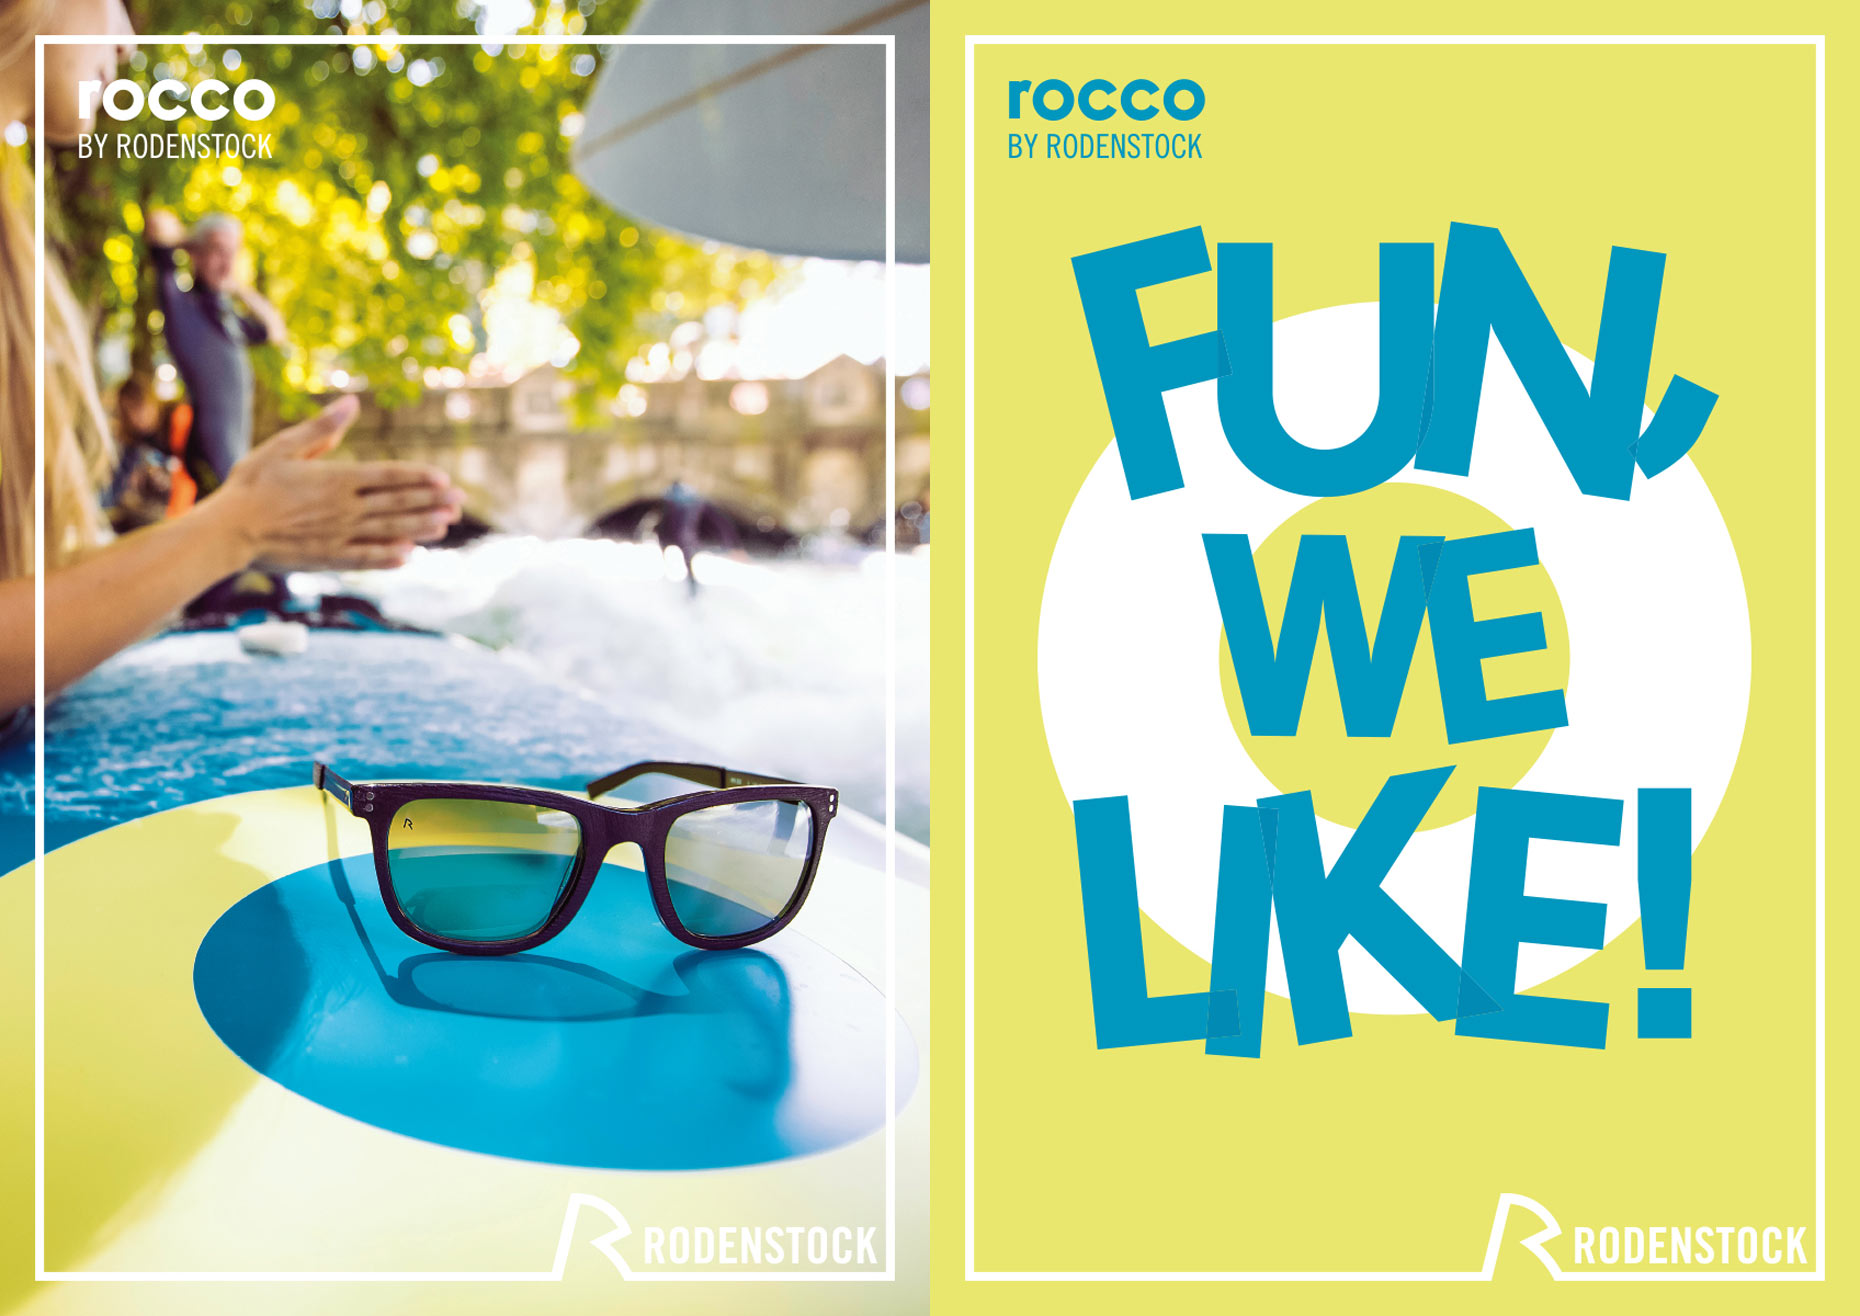 stiphout_rocco-rodenstock-campaign_02